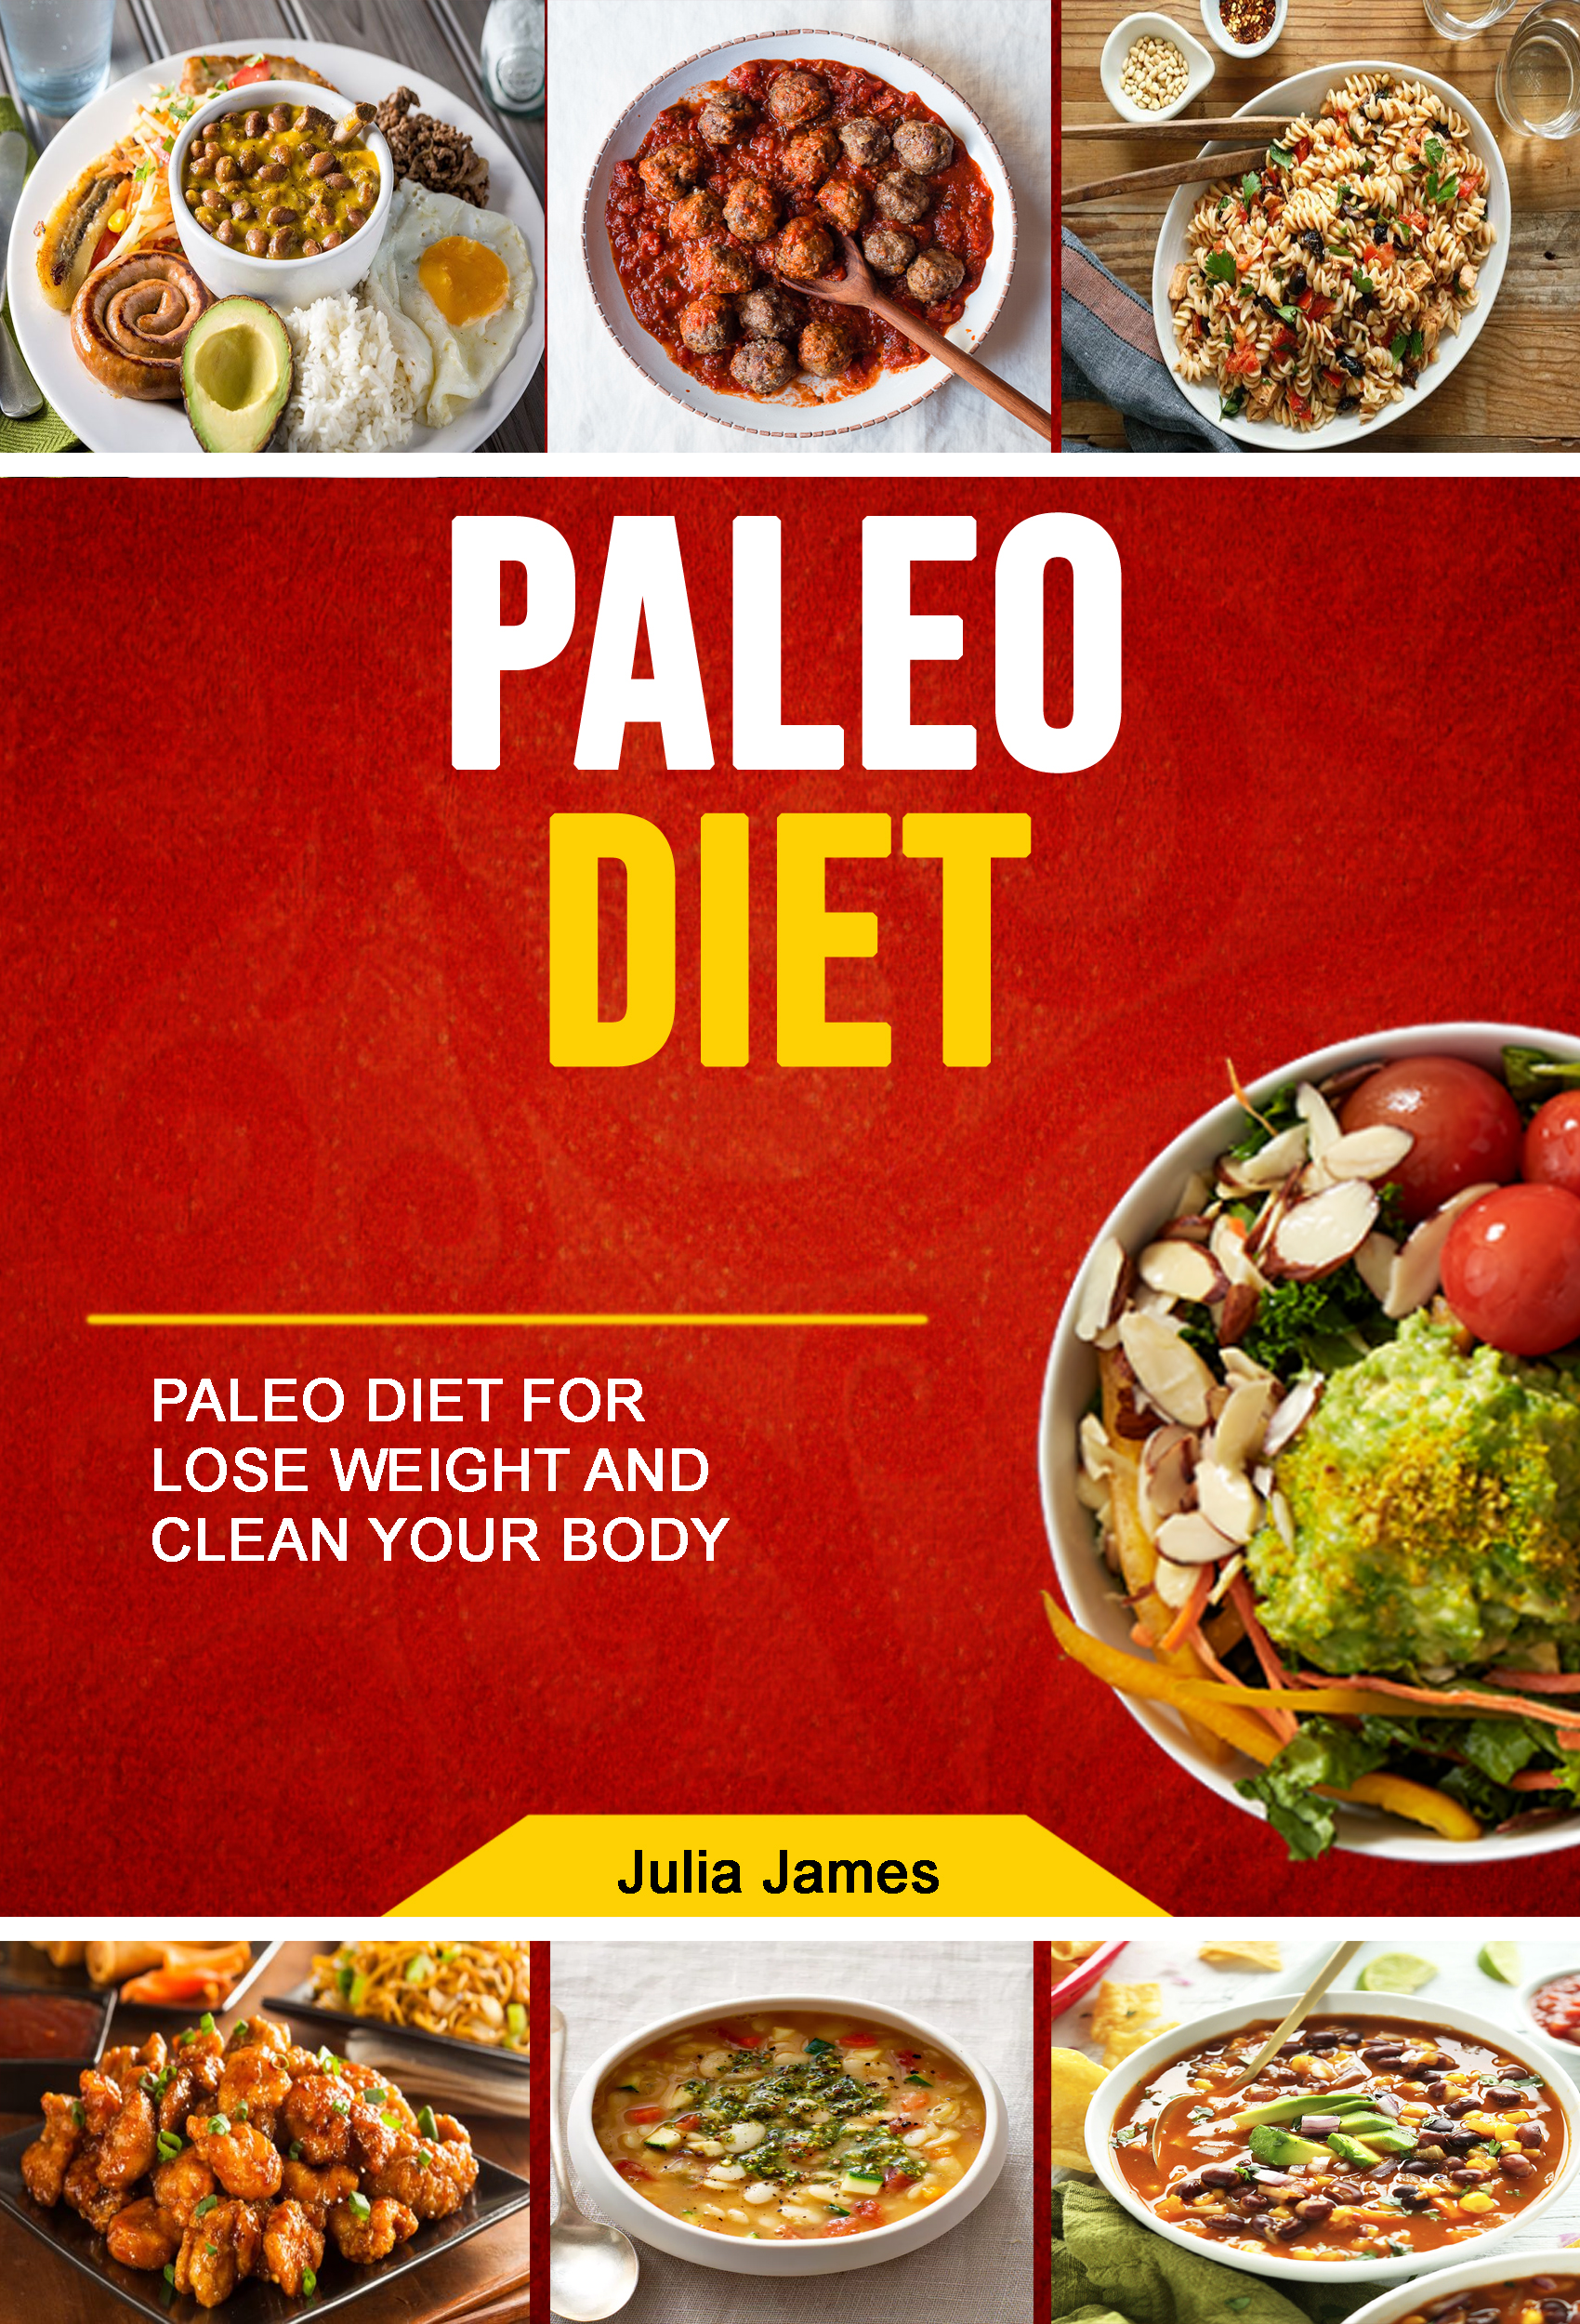 Paleo diet: paleo diet for lose weight and clean your body